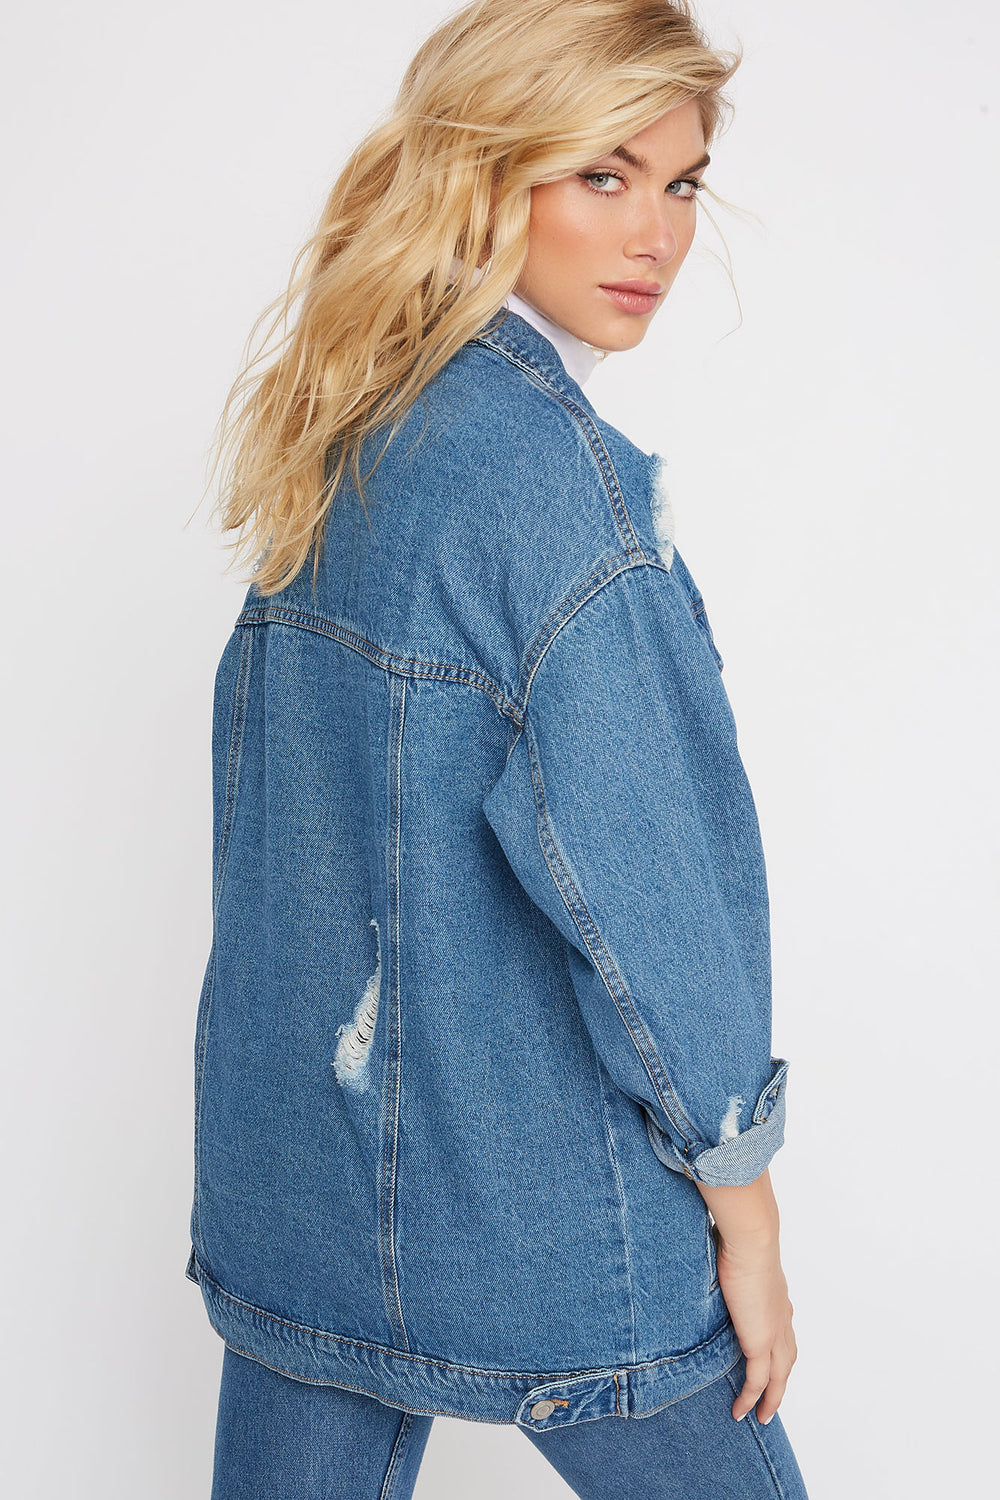 Oversized Distressed Denim Jacket Medium Blue